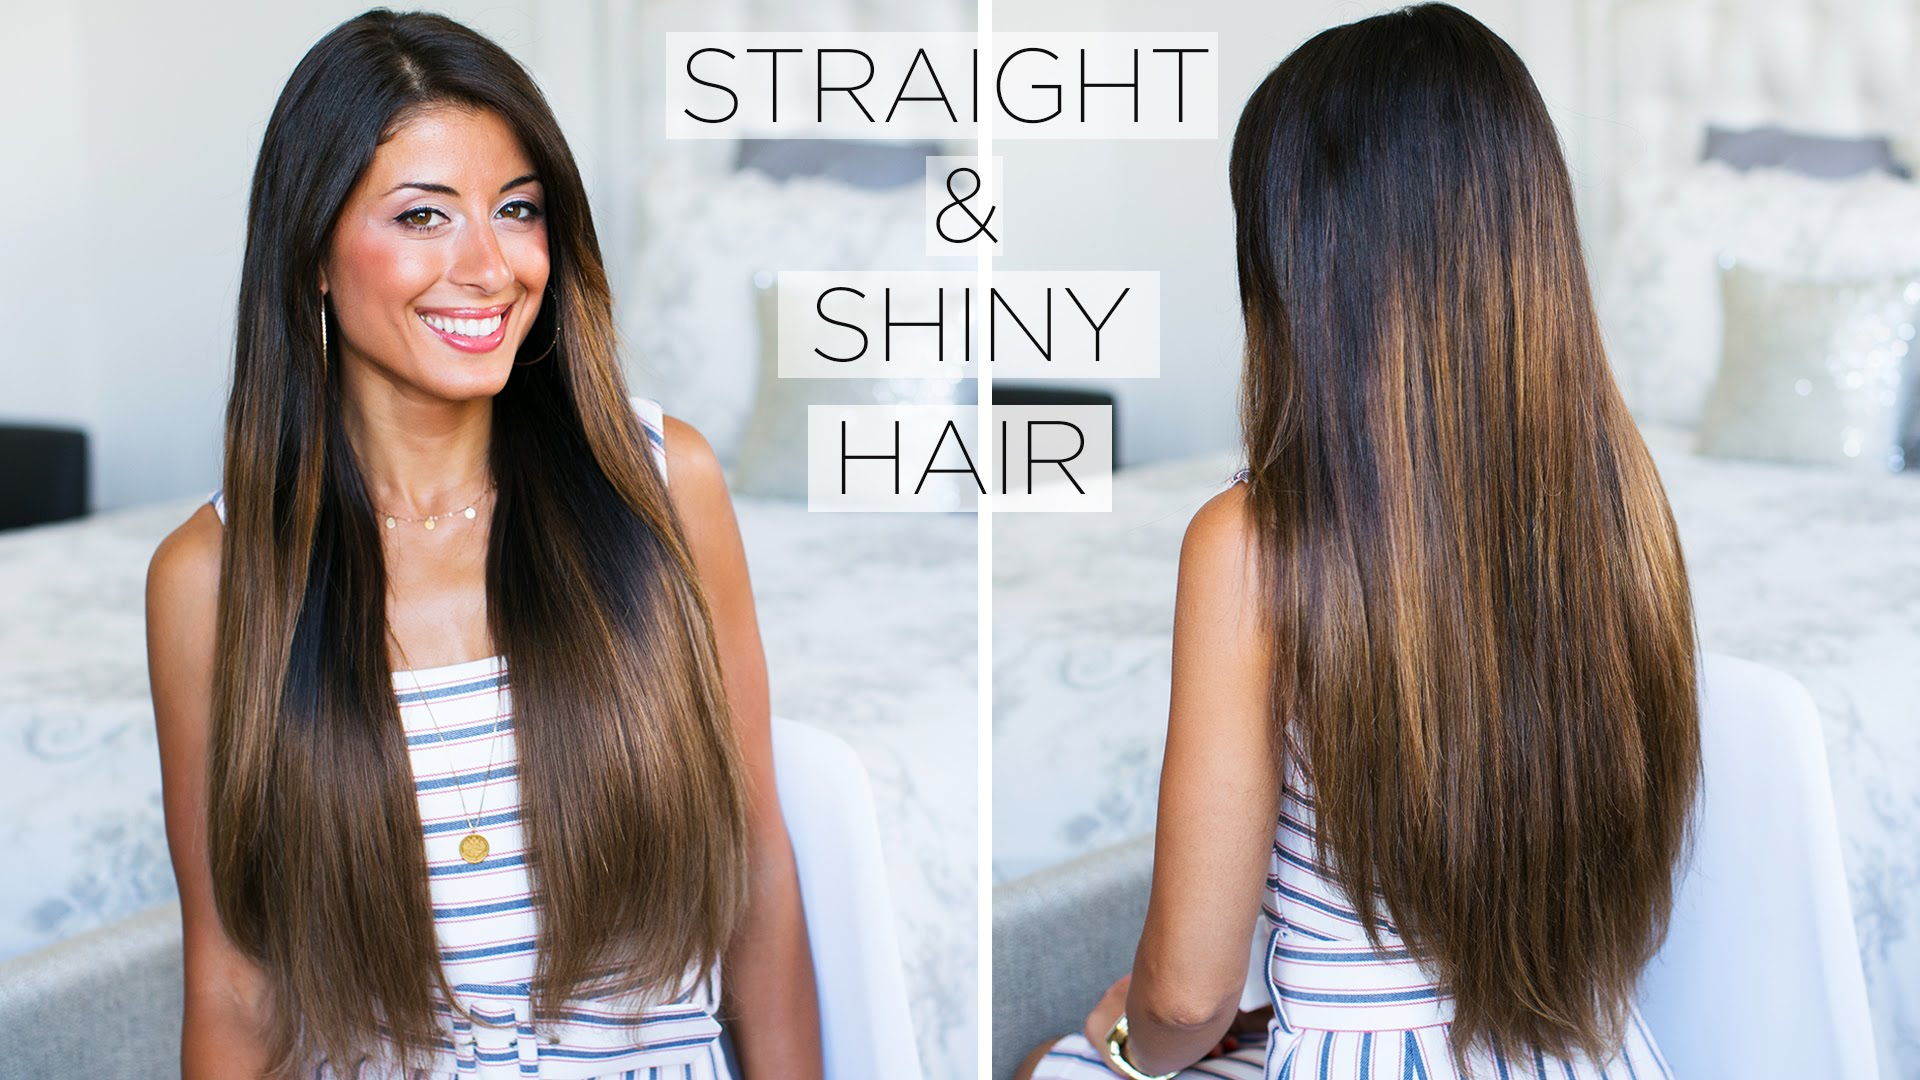 21 great layered hairstyles for straight hair 2019 - pretty designs